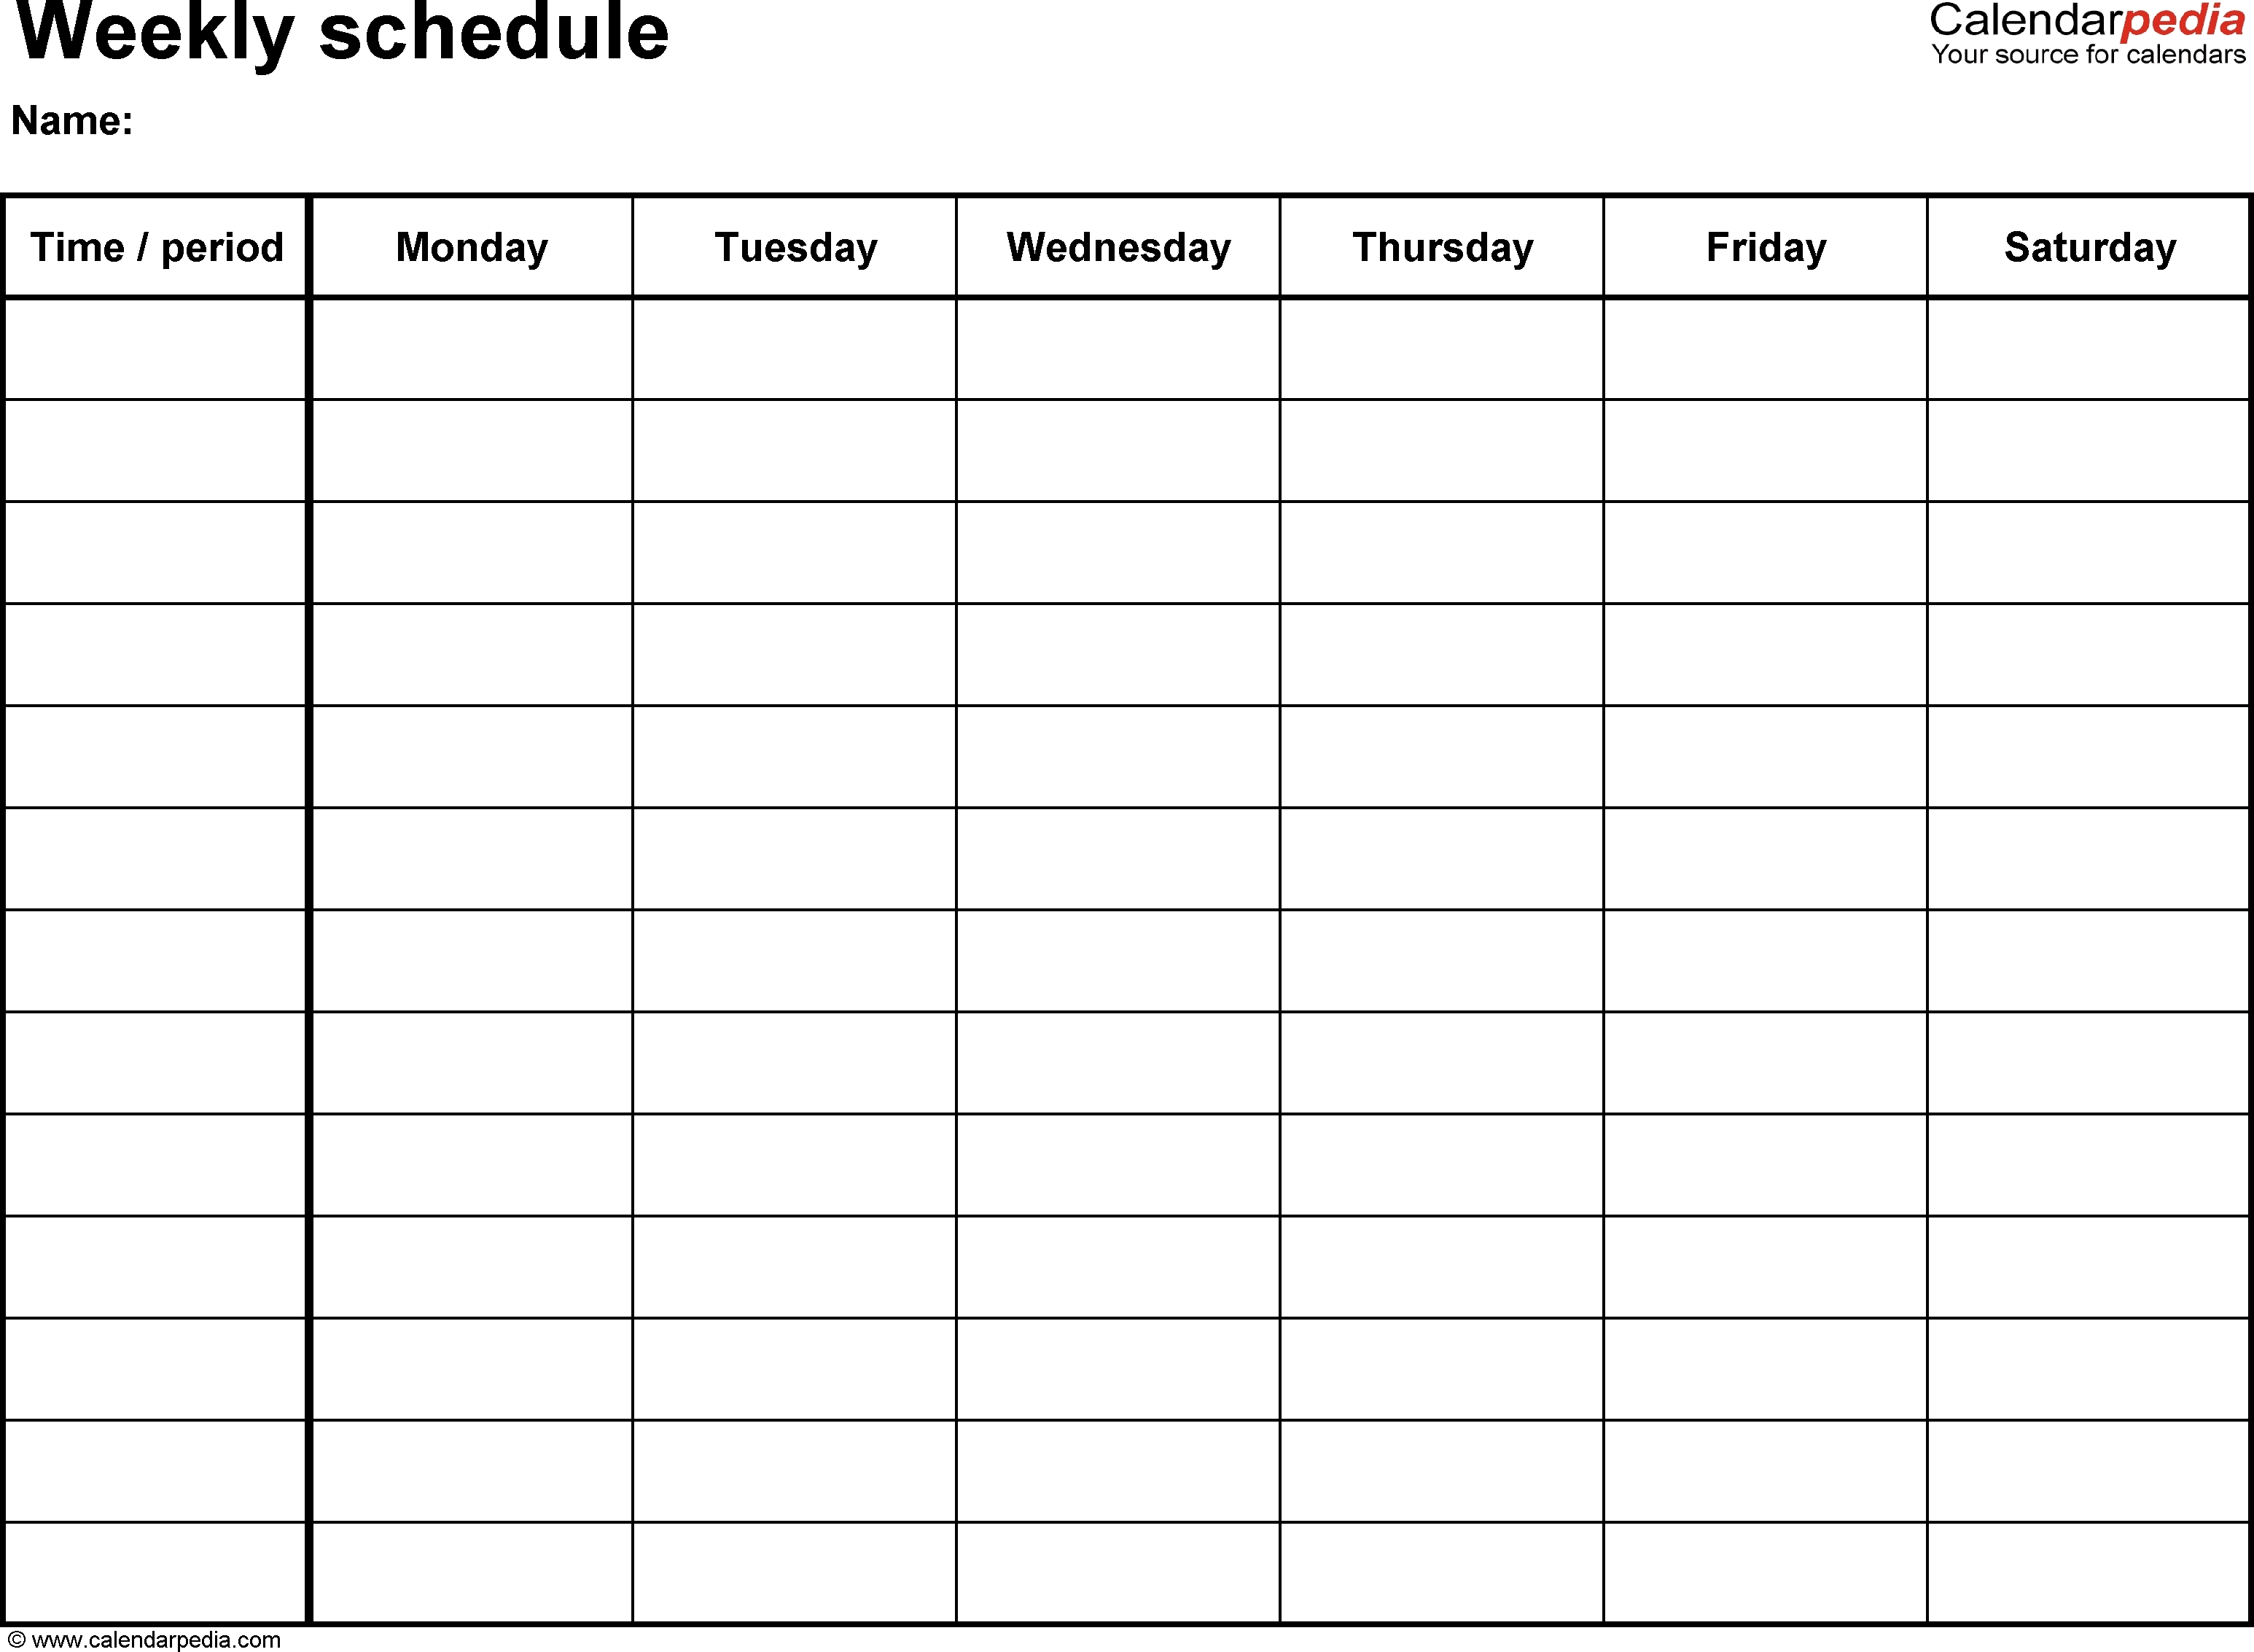 appointment weekly calendar template seven photo Weekly Calendar With Time Slots Template erdferdf